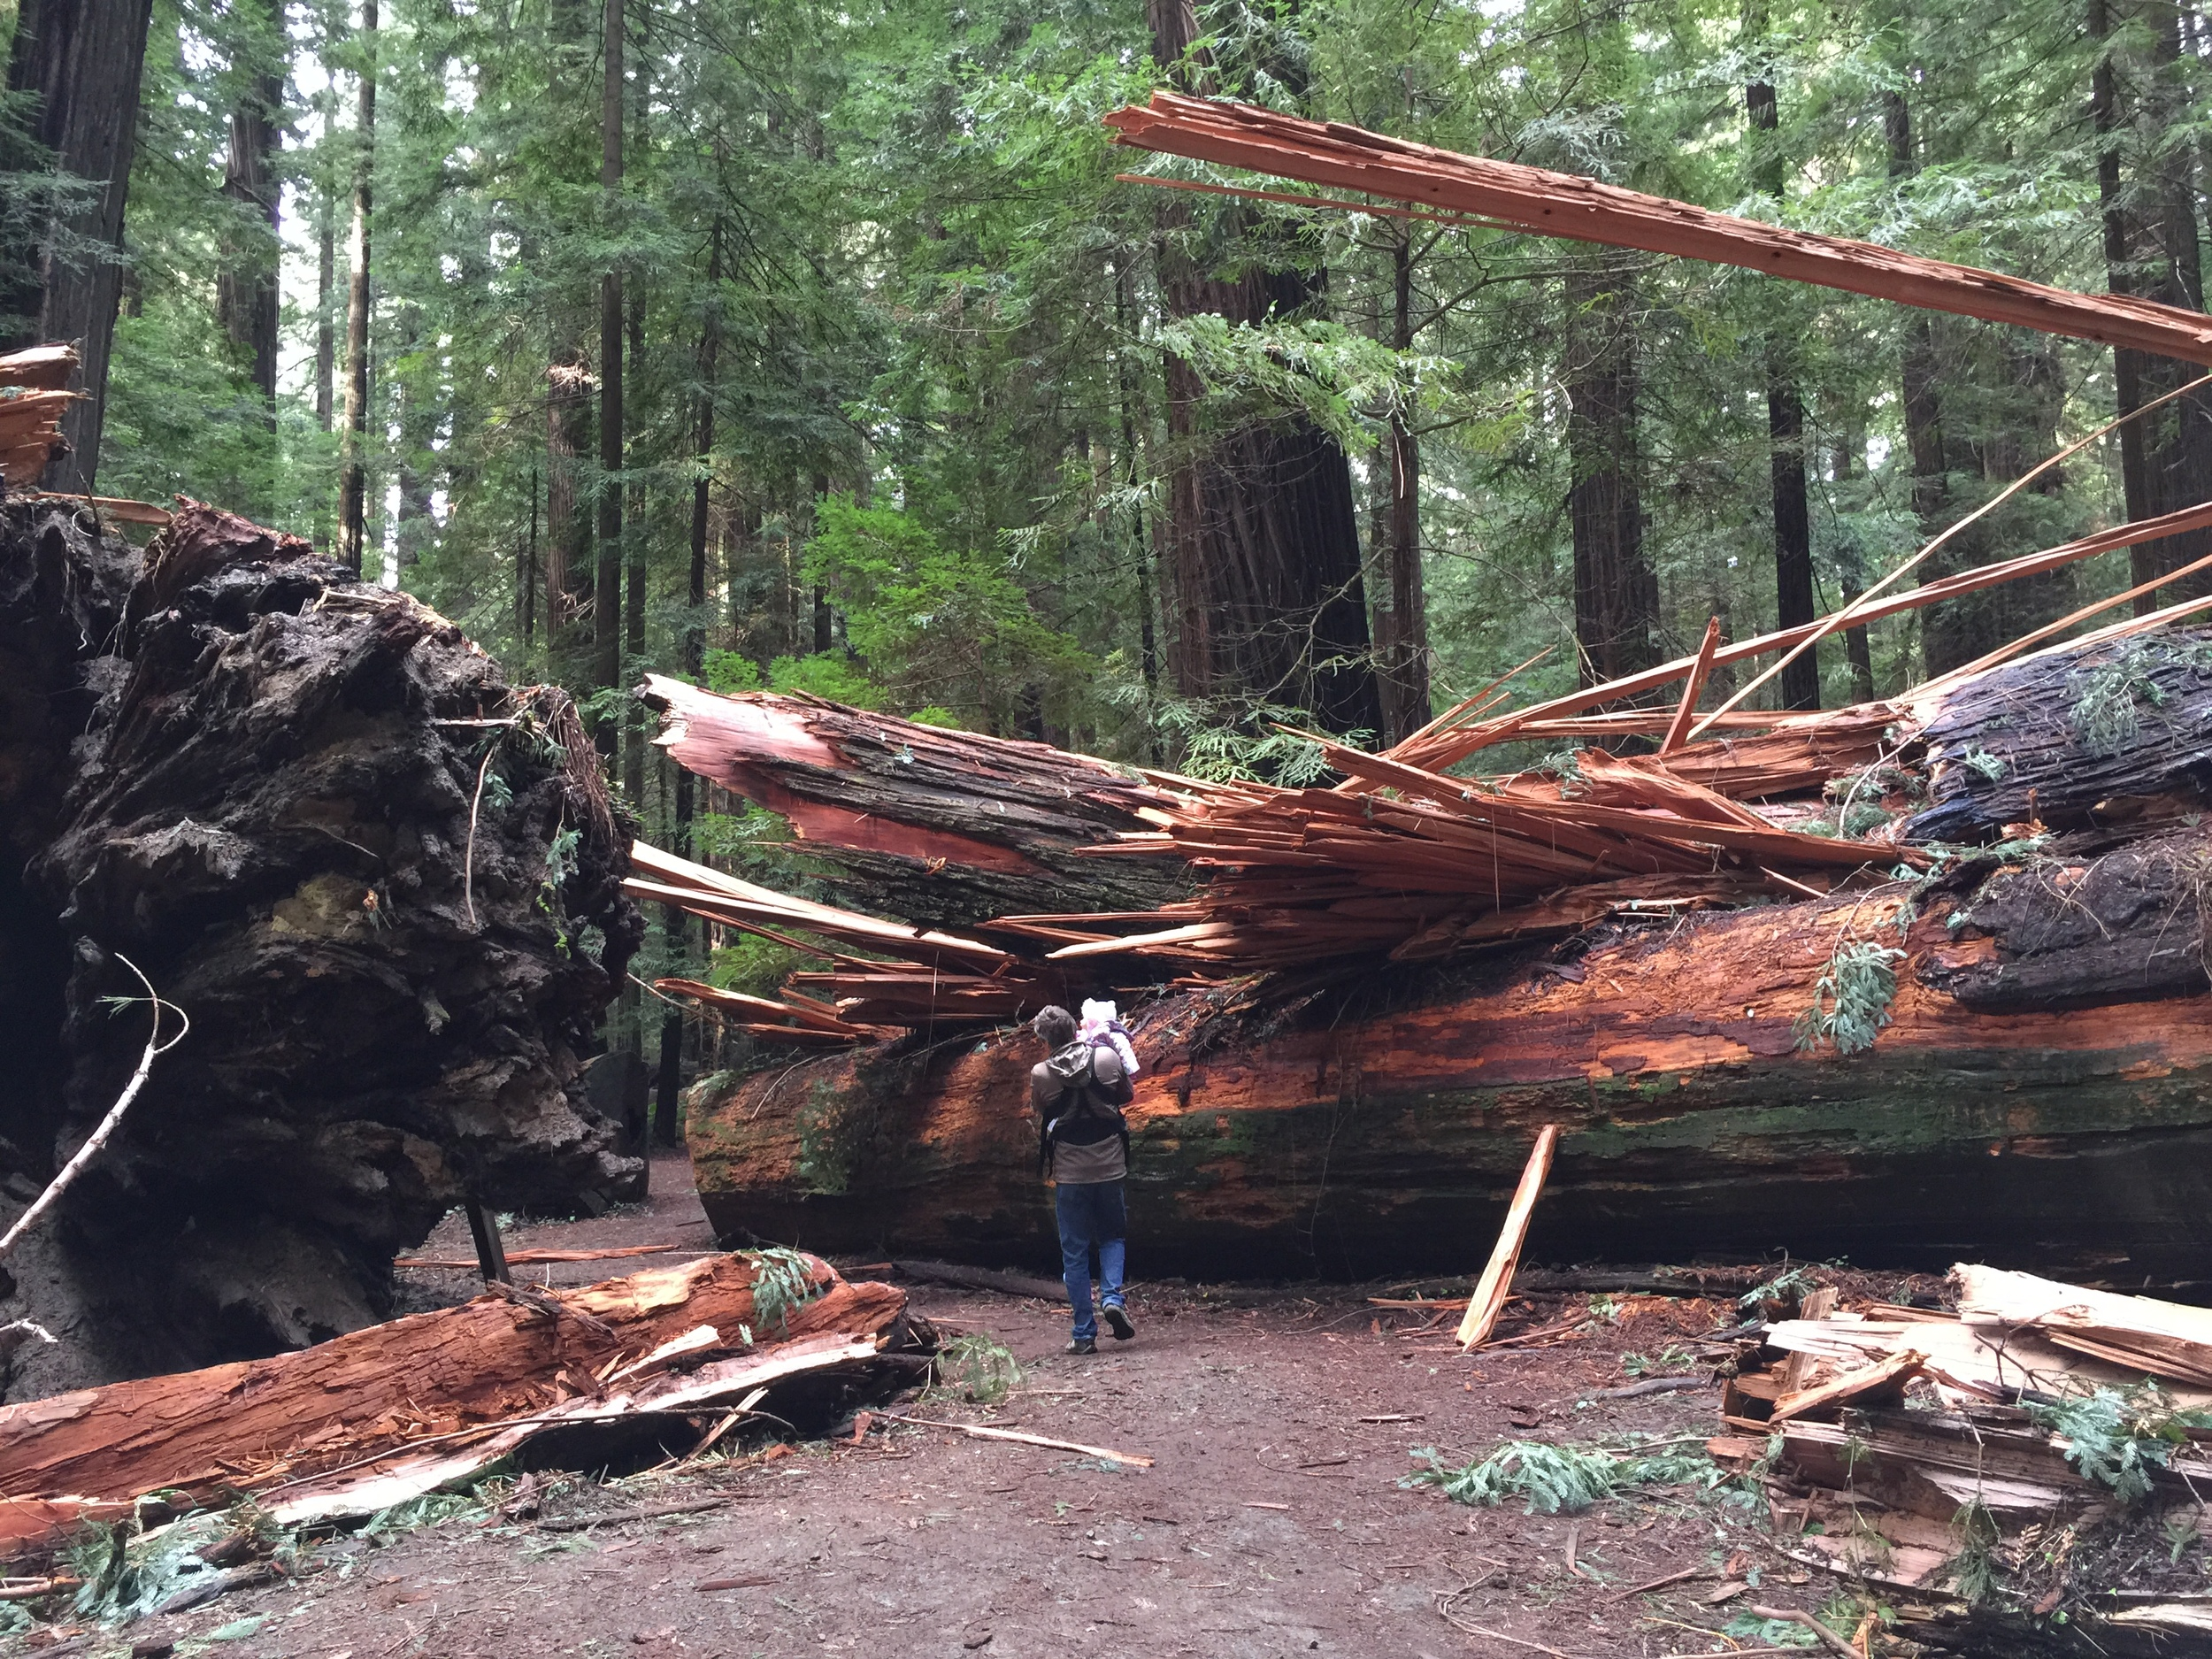 On the Founders Grove Trail, found this tree that had fallen just 3 weeks earlier